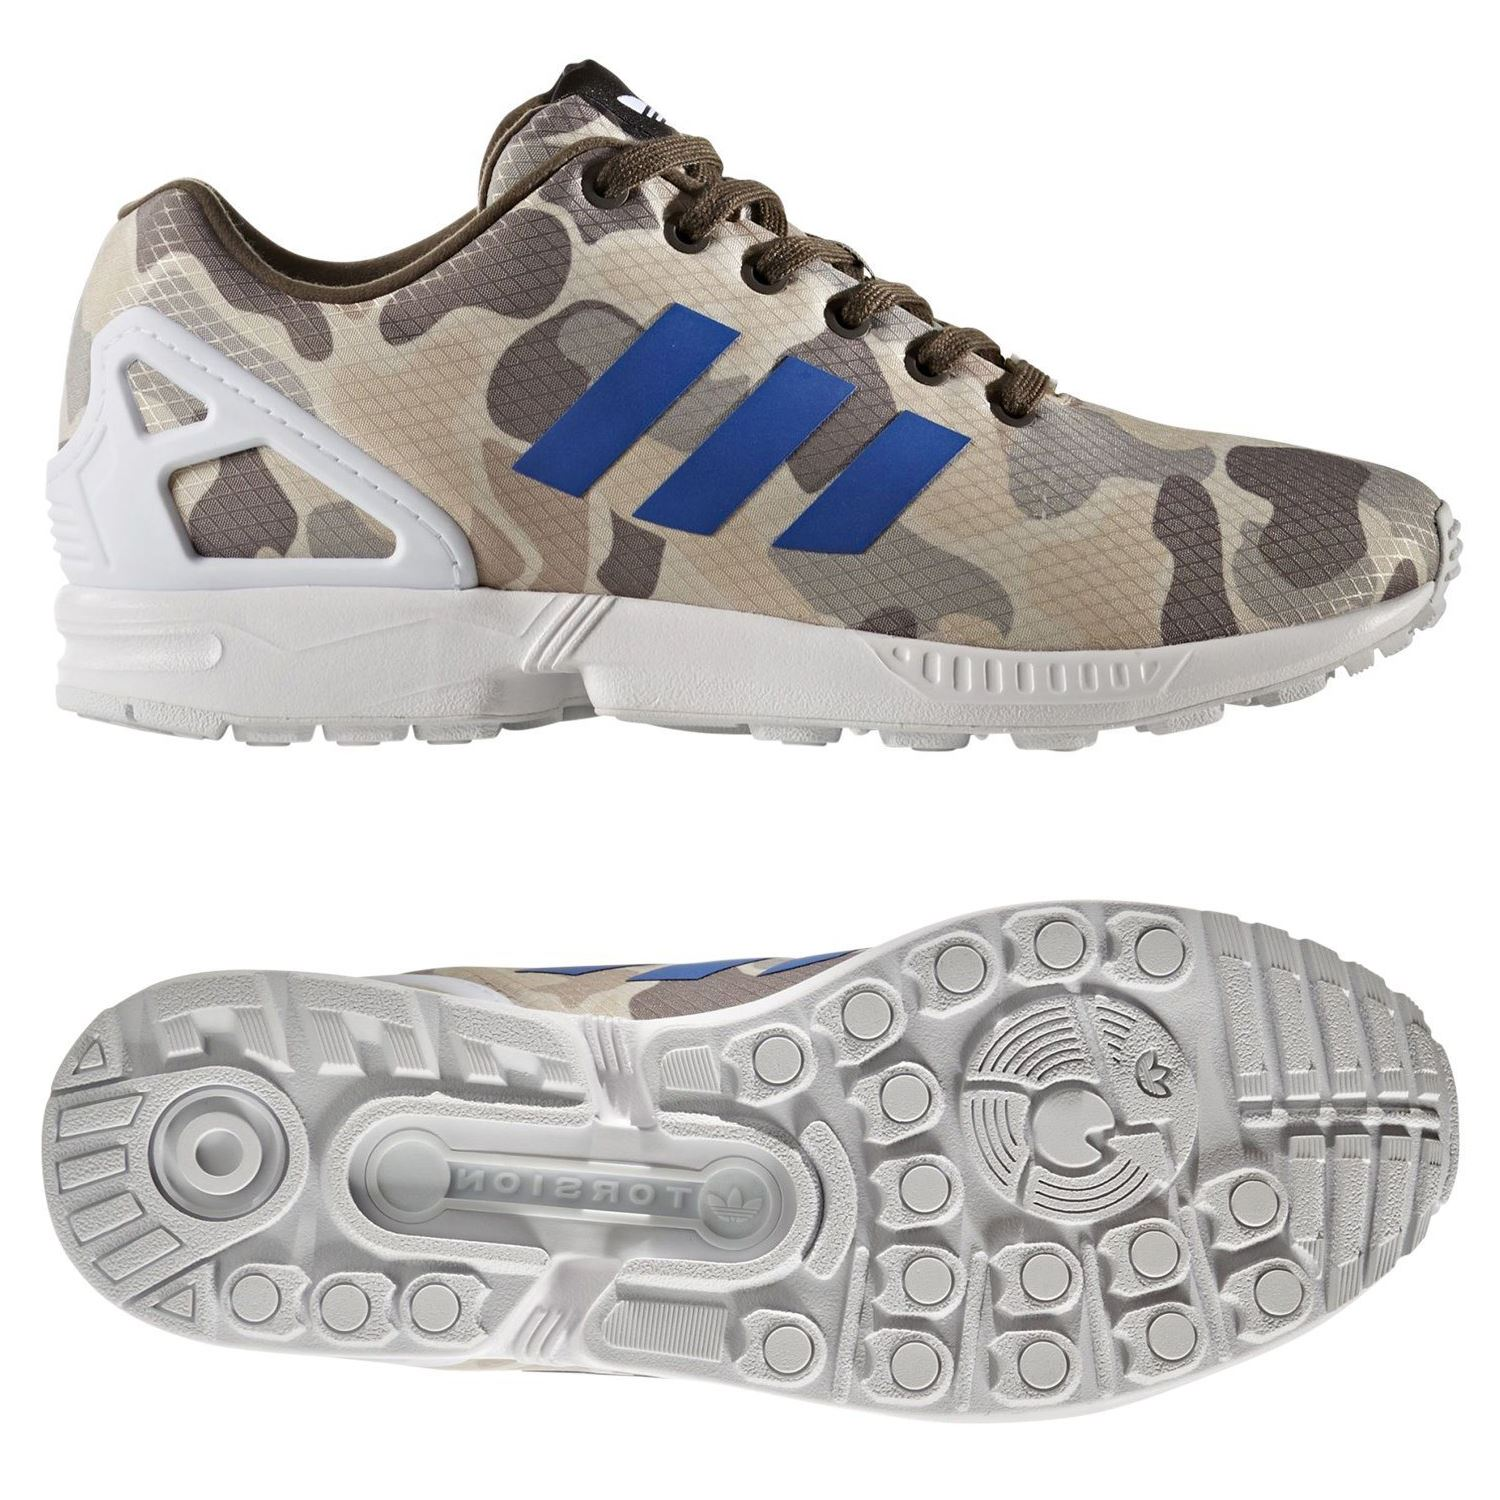 12971c288bfeb Details about adidas ORIGINALS MEN S ZX FLUX TRAINERS MULTI CAMO SNEAKERS  SHOES RUNNING COMFY